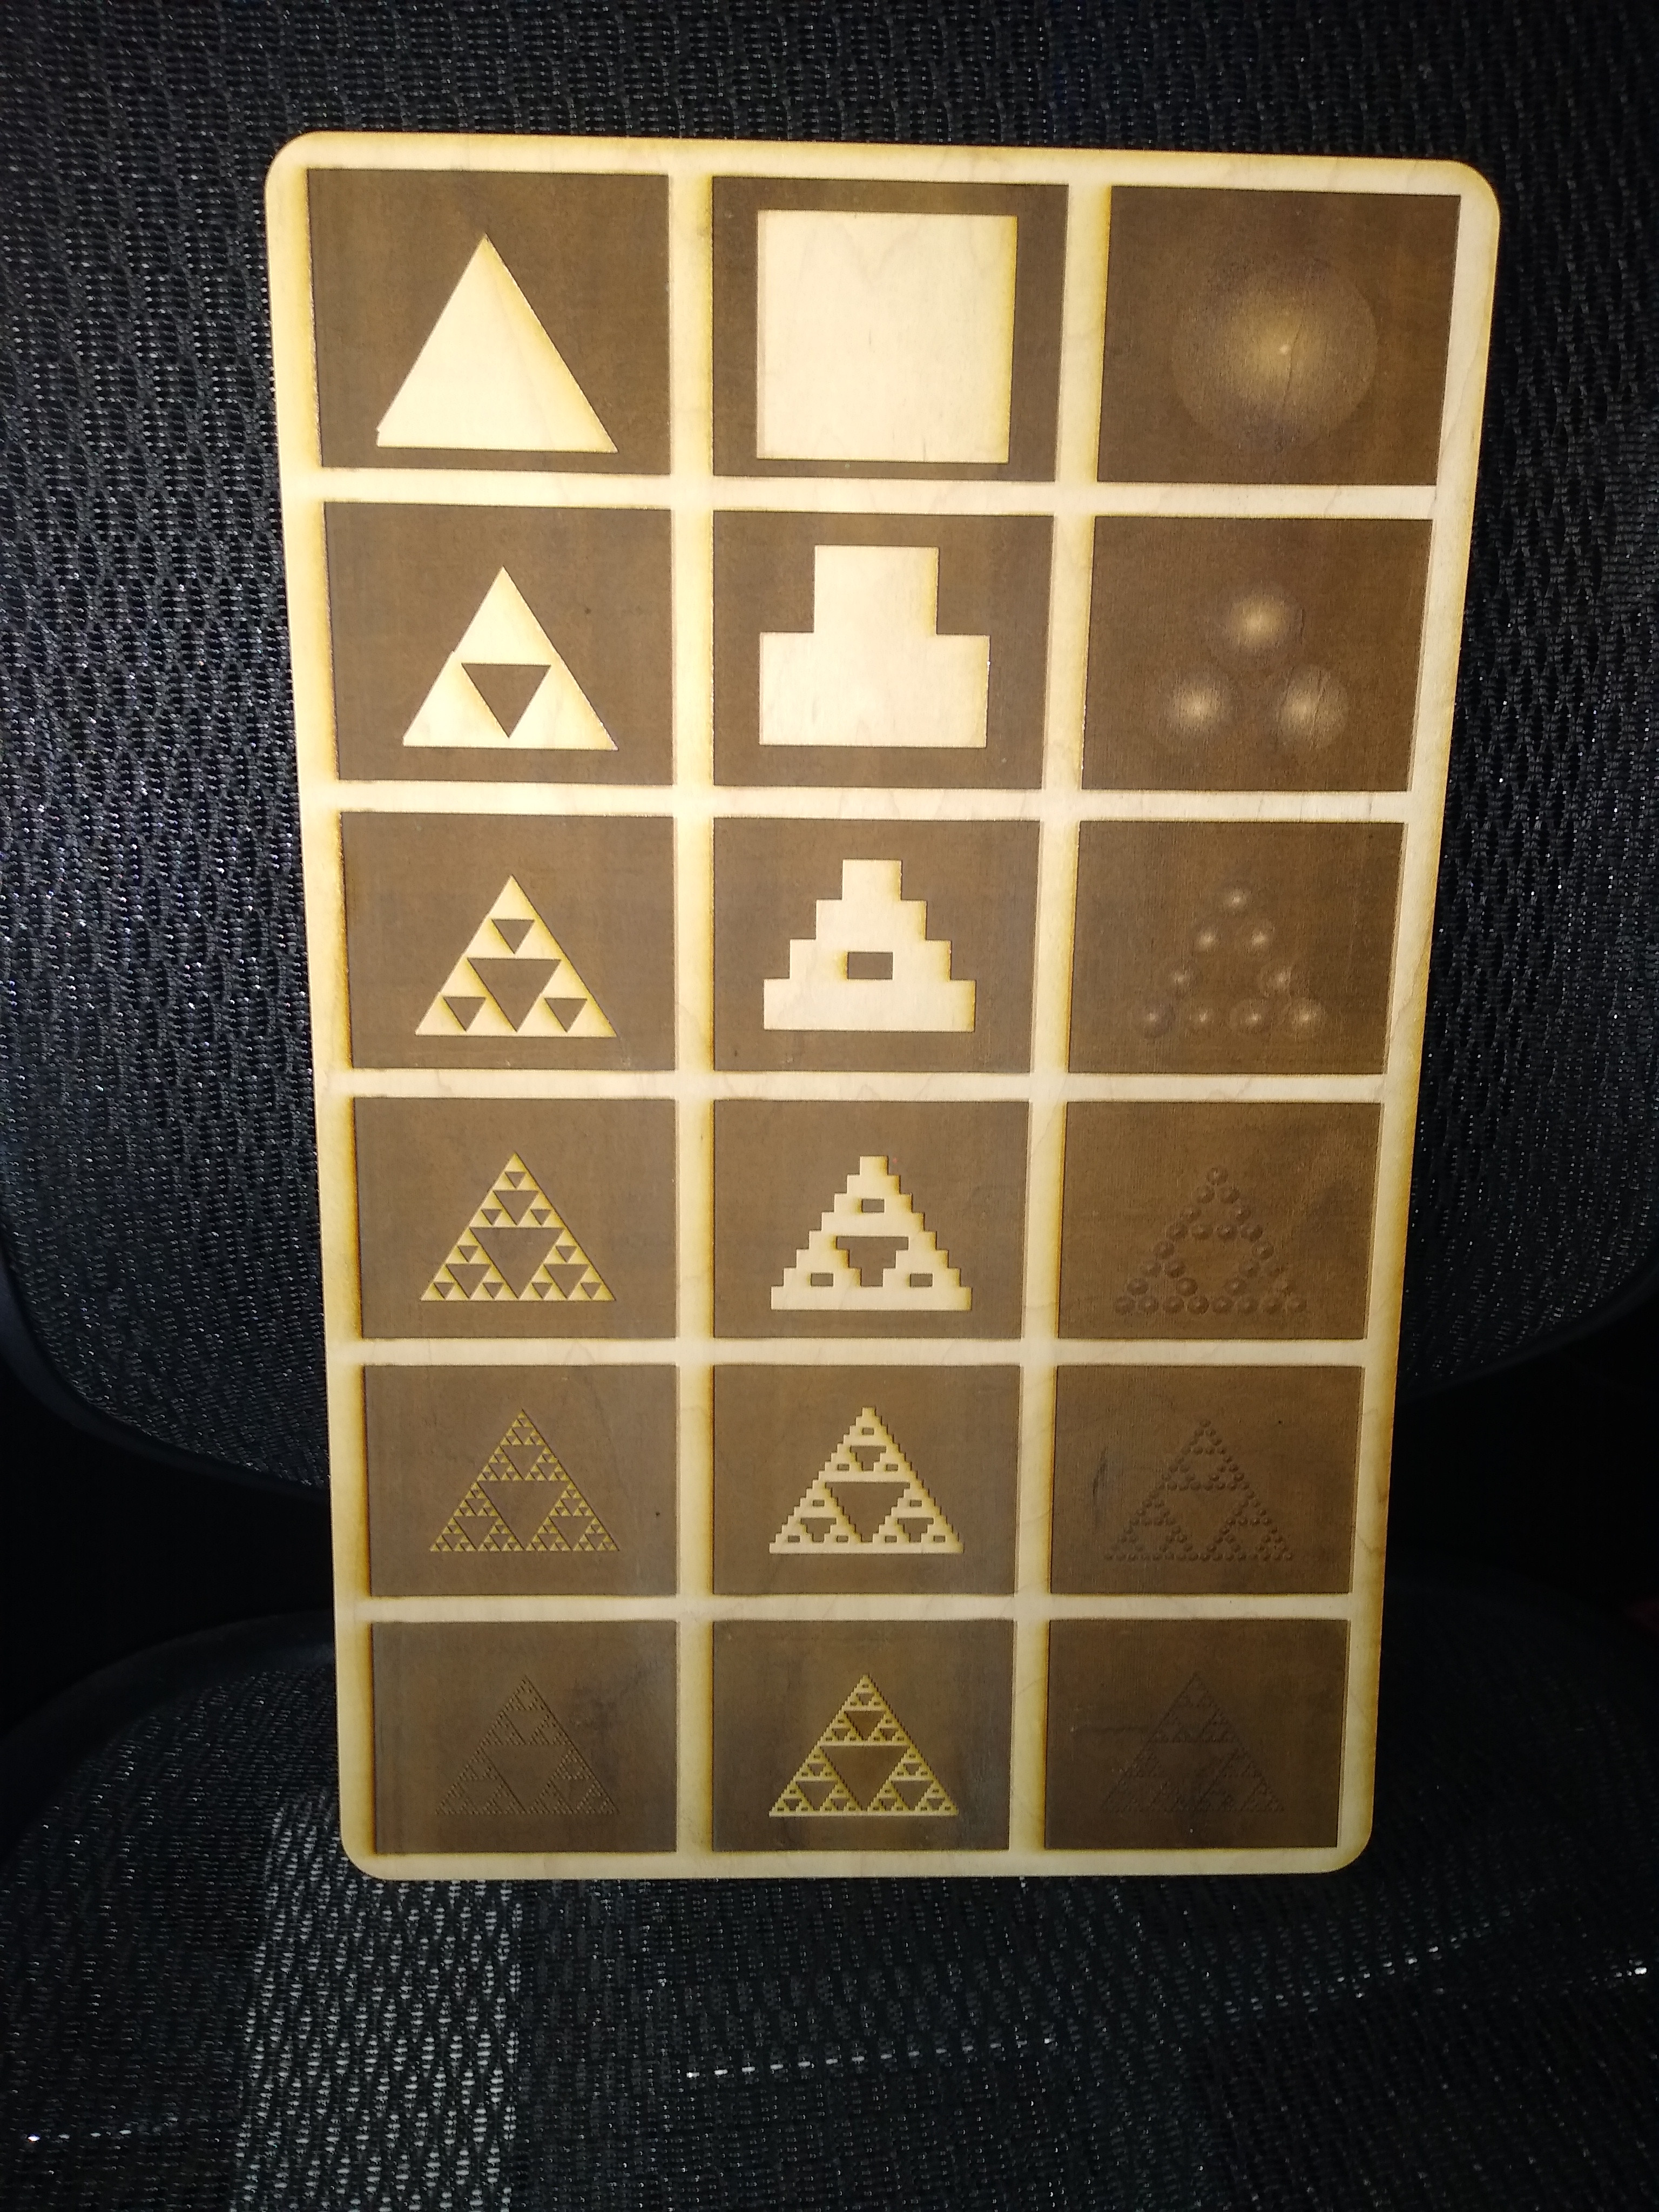 This large panel engraving demonstrates that ANY starting shape will produce a sierpinski gasket when the fractal tiling rules are applied. While the bumps on the left and right don't show very well visually, there's a very distinct texture there.